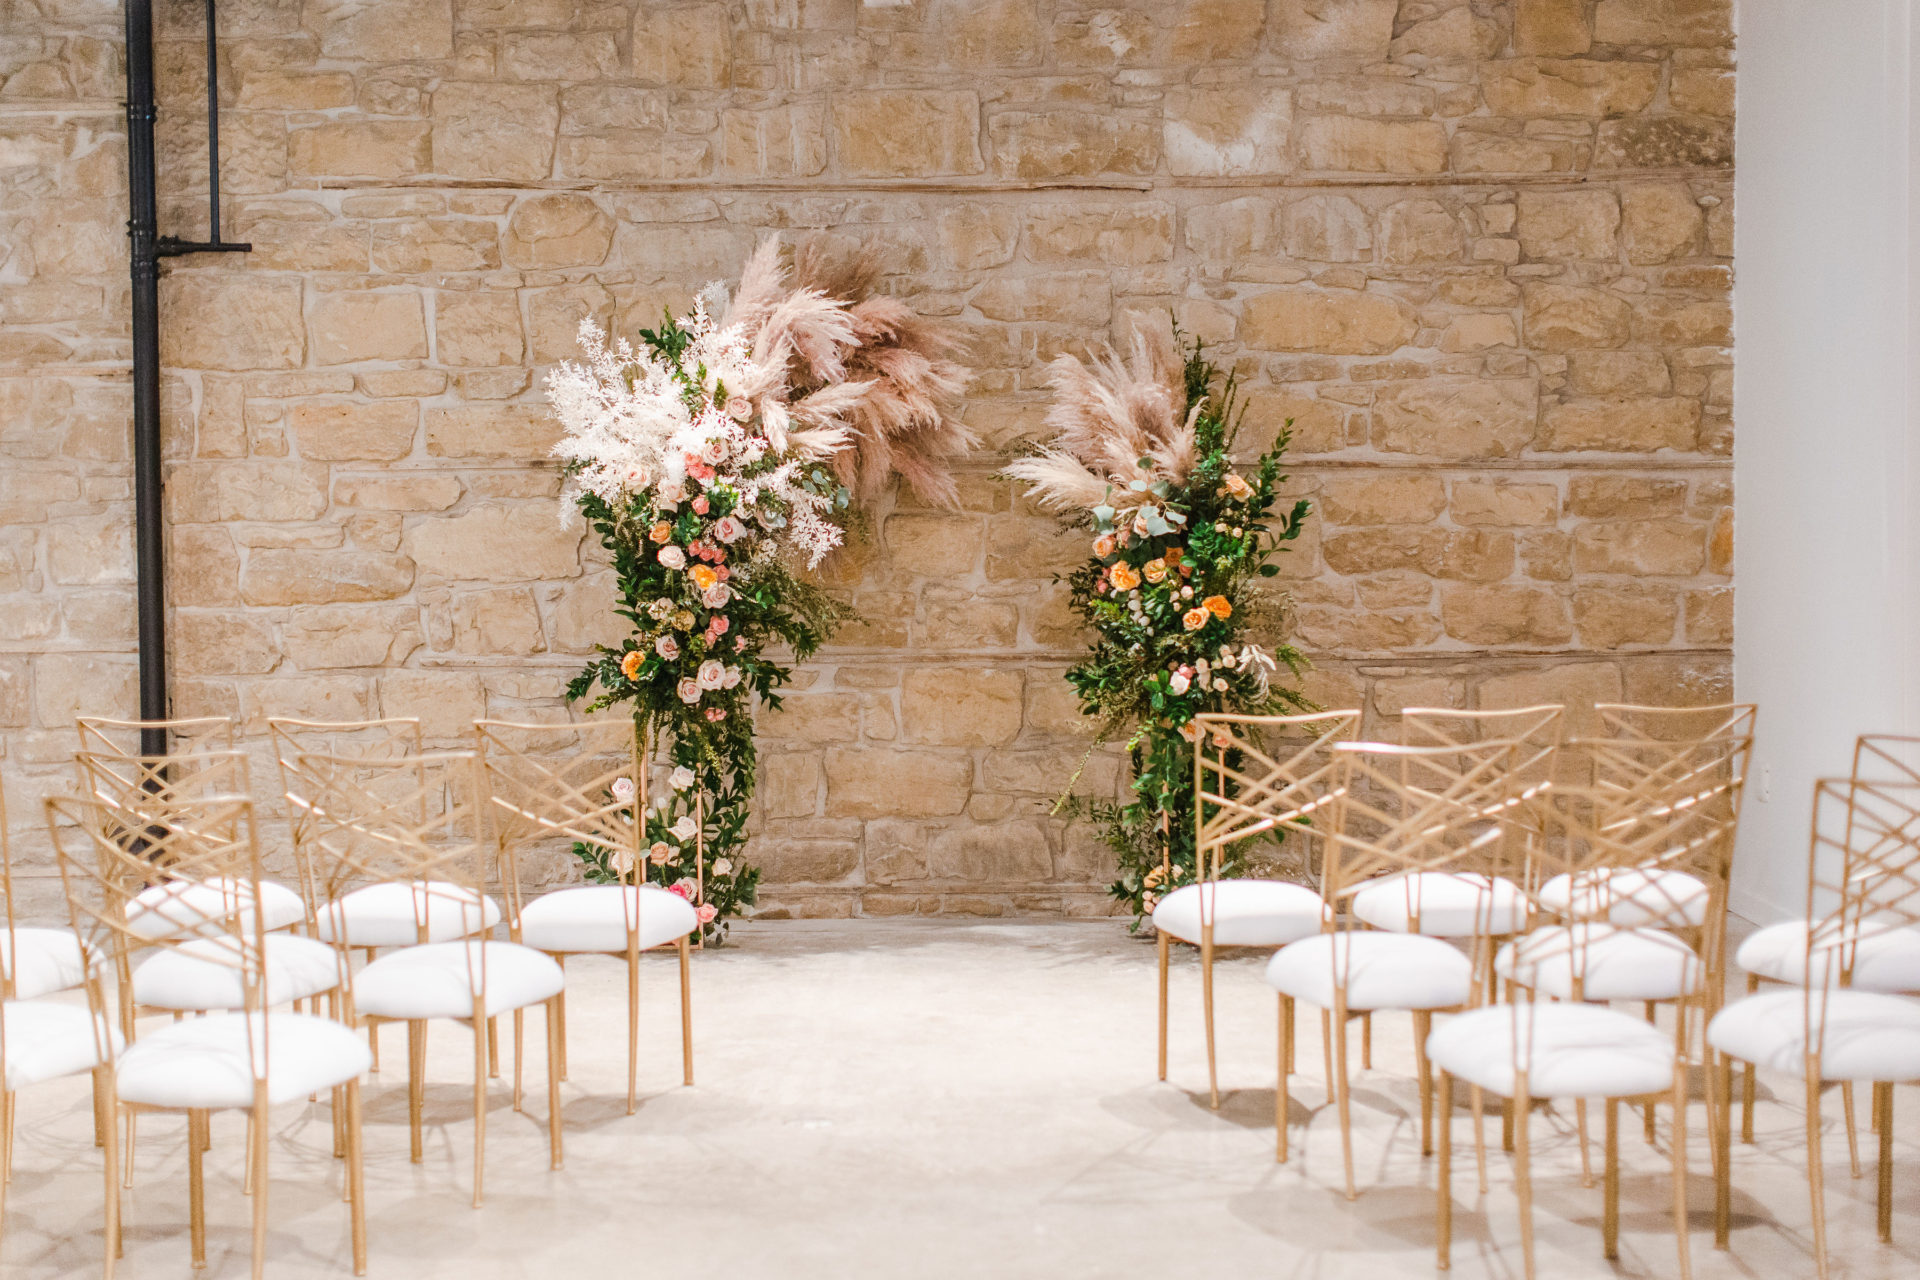 Floral wedding archway and gold chairs at The Pioneer event venue